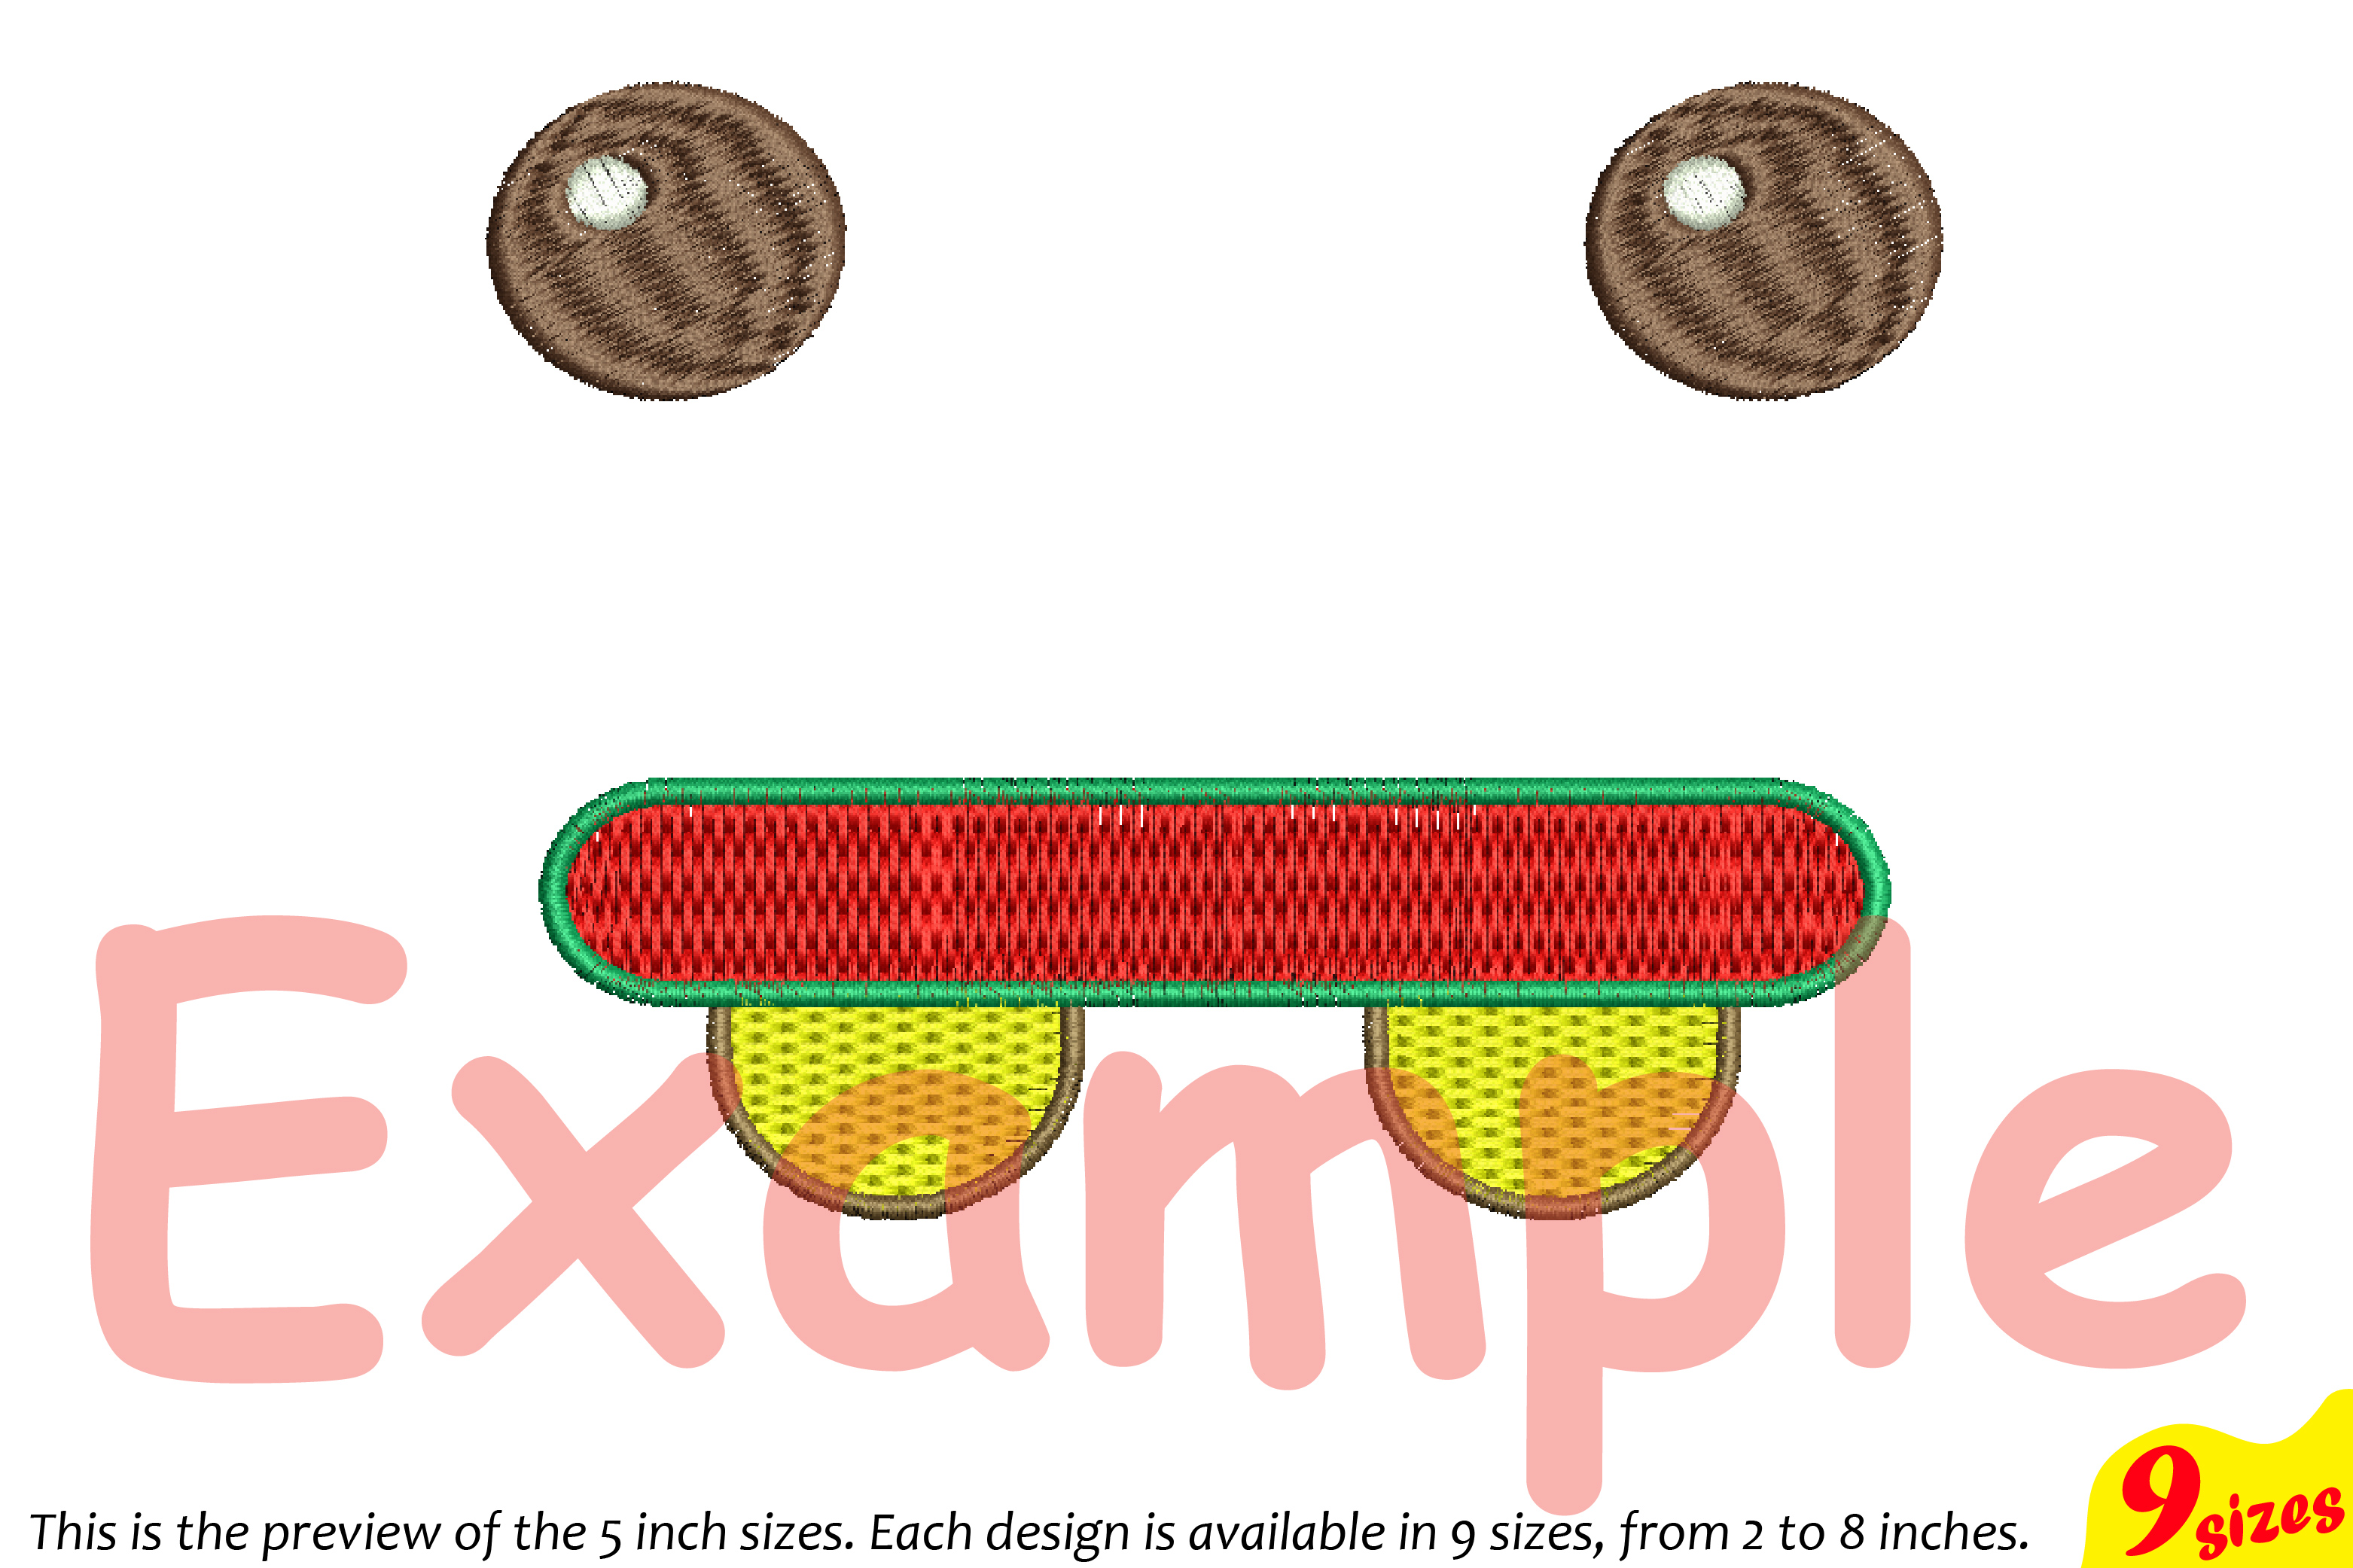 Cute Emoji Embroidery Design Machine Instant Download Commercial Use digital file icon symbol sign emoticons smile Kawaii Expression 185b example image 5